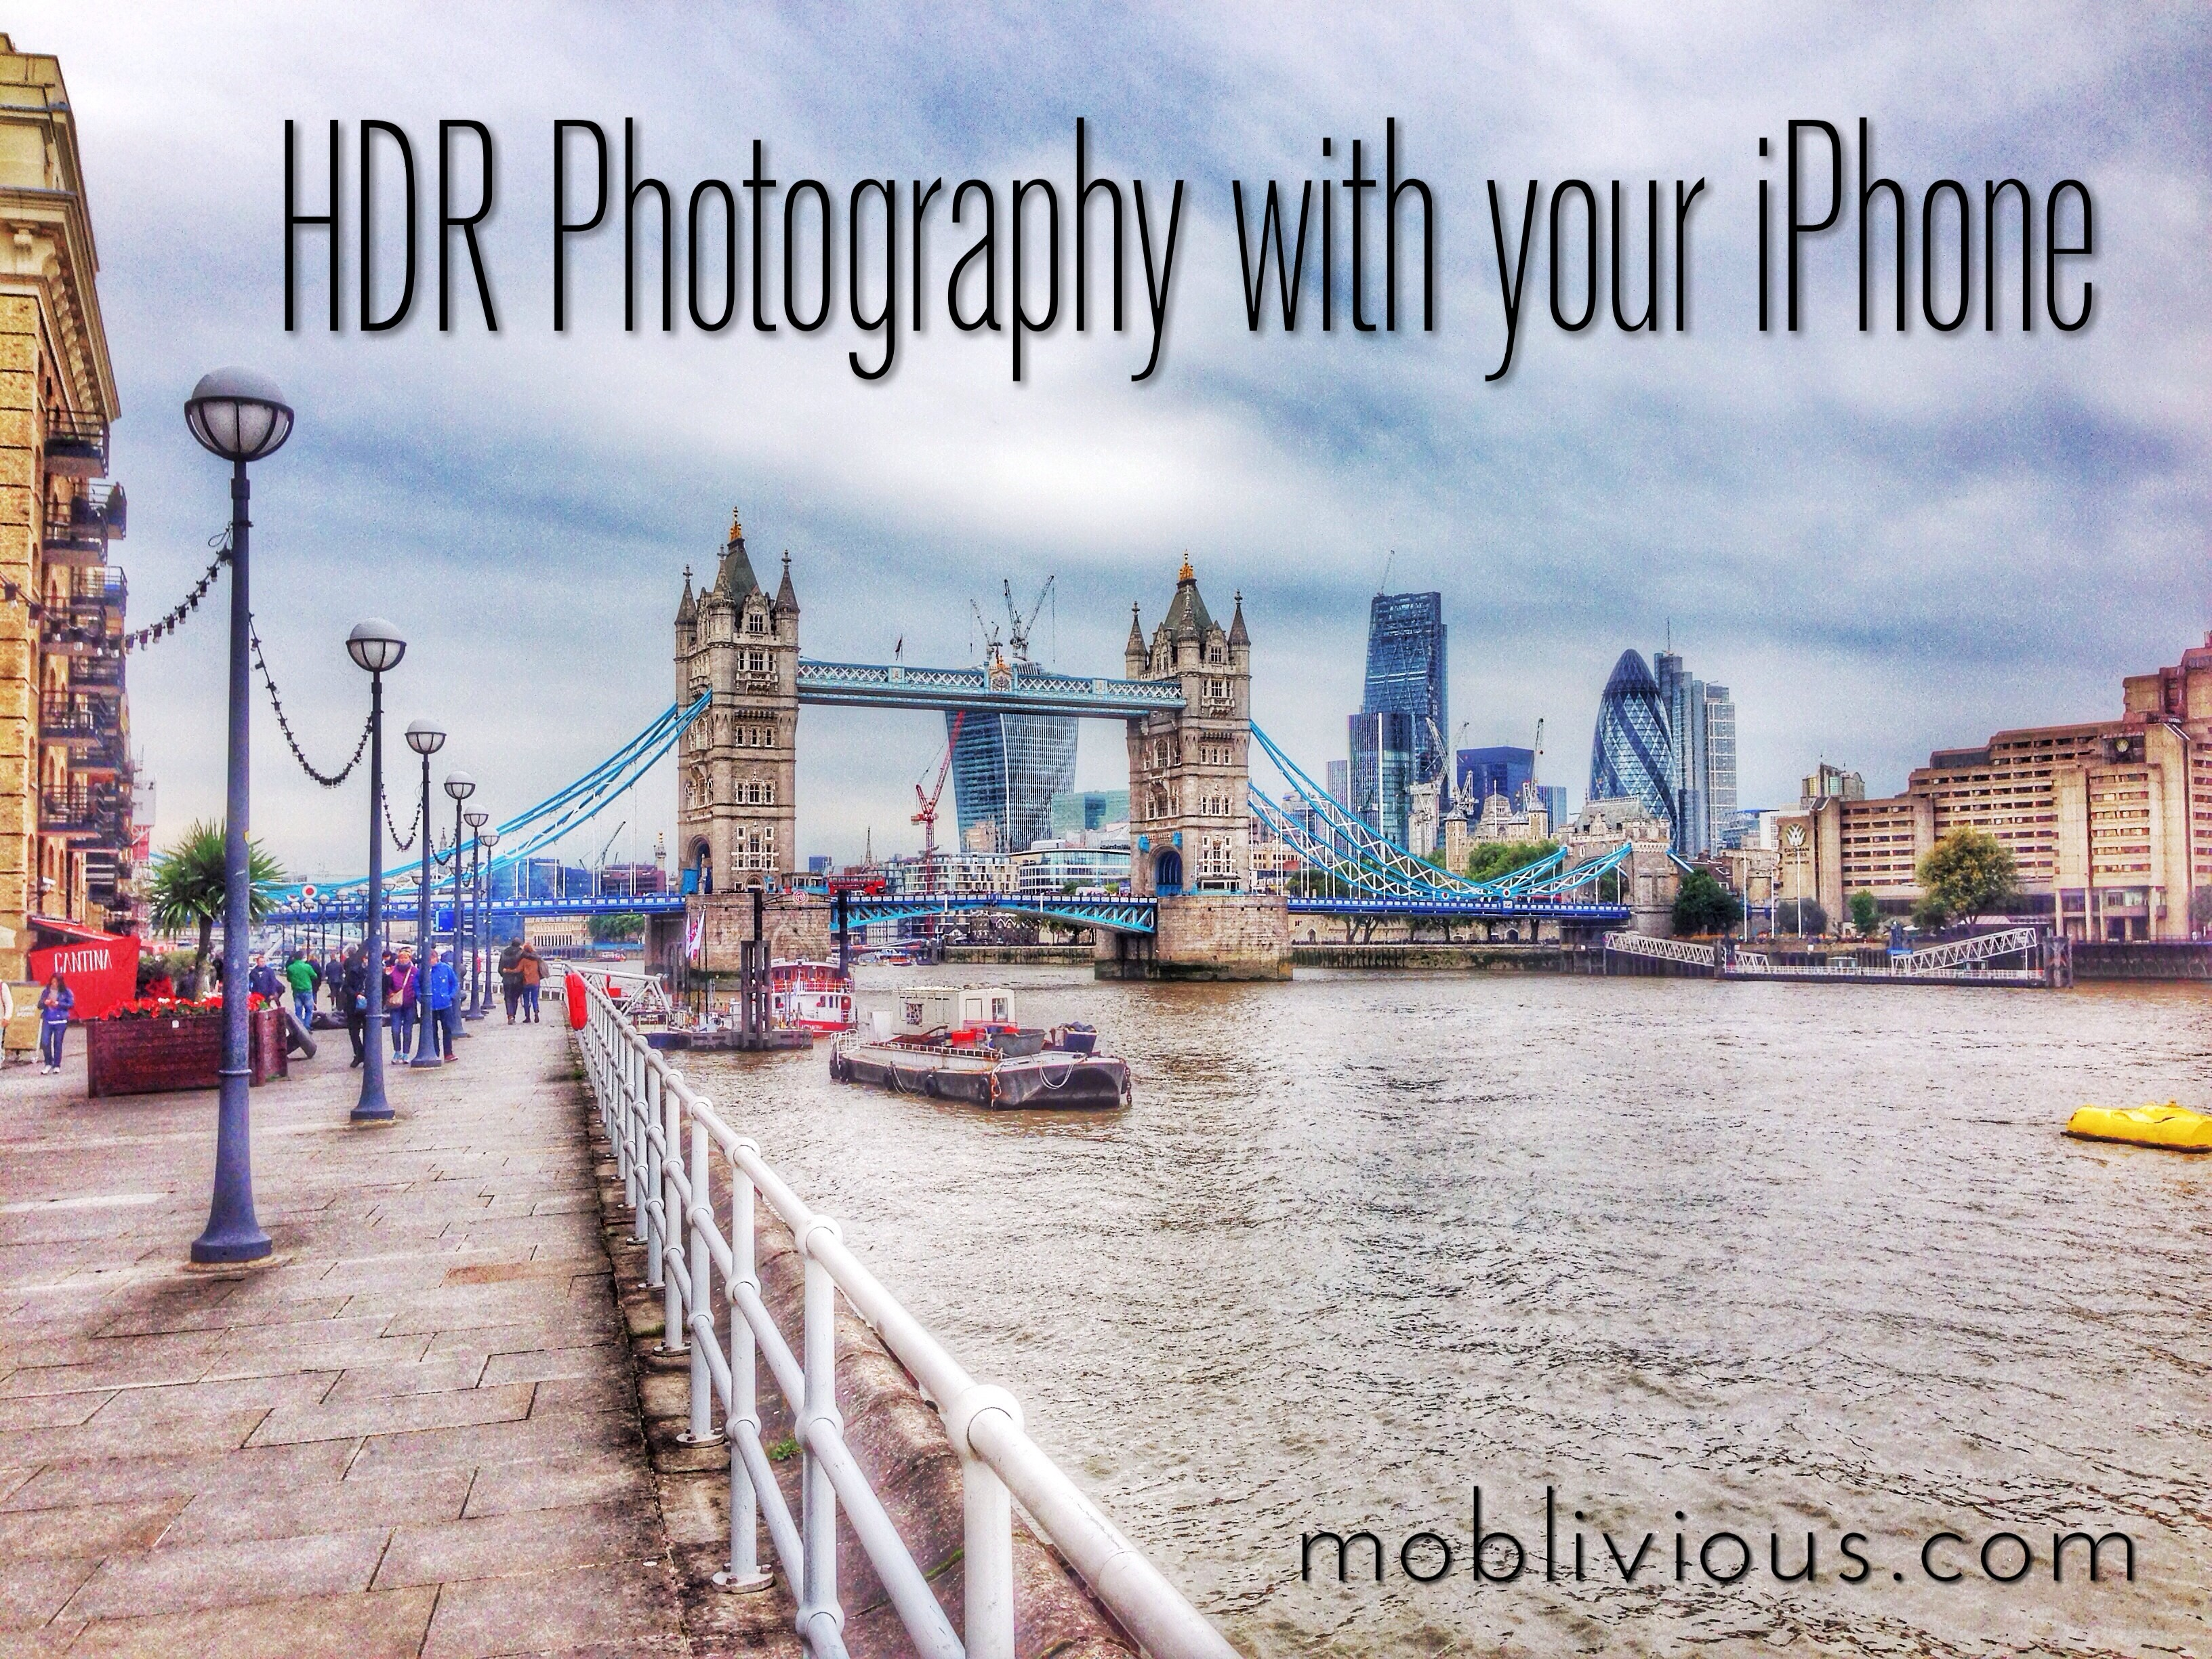 HDR-Photography-with-your-iPhone